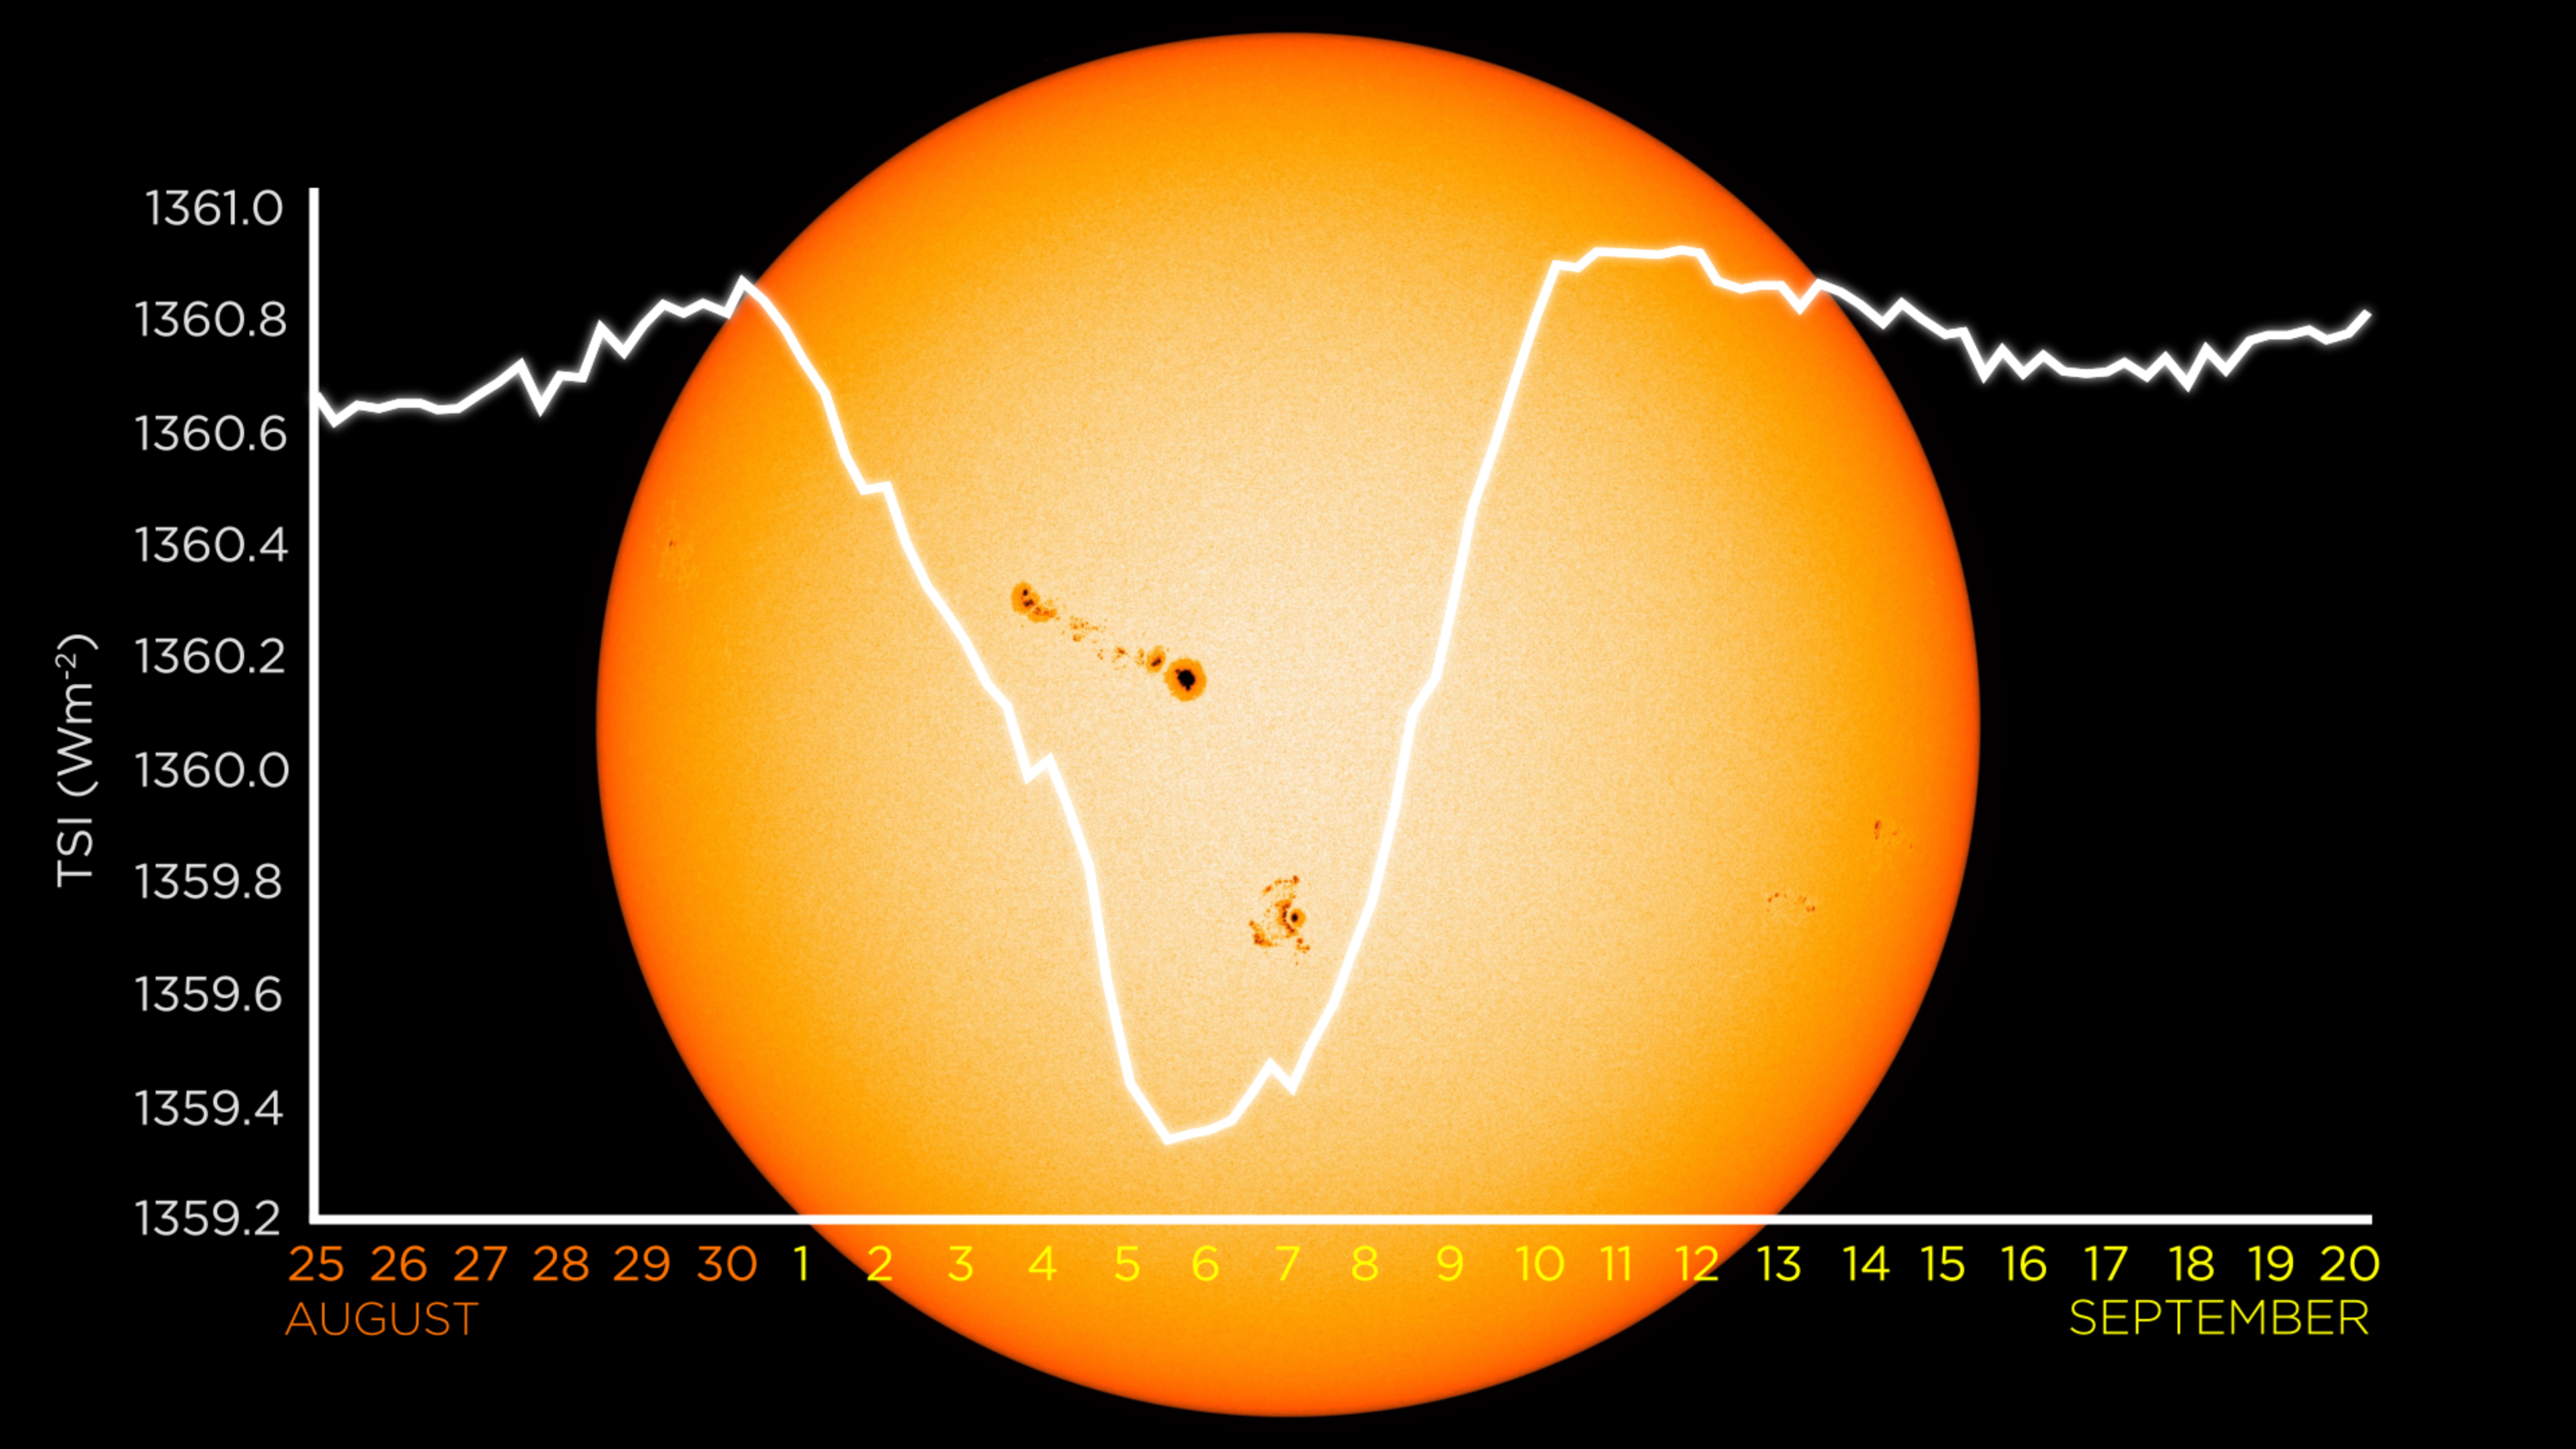 Total solar irradiance chart